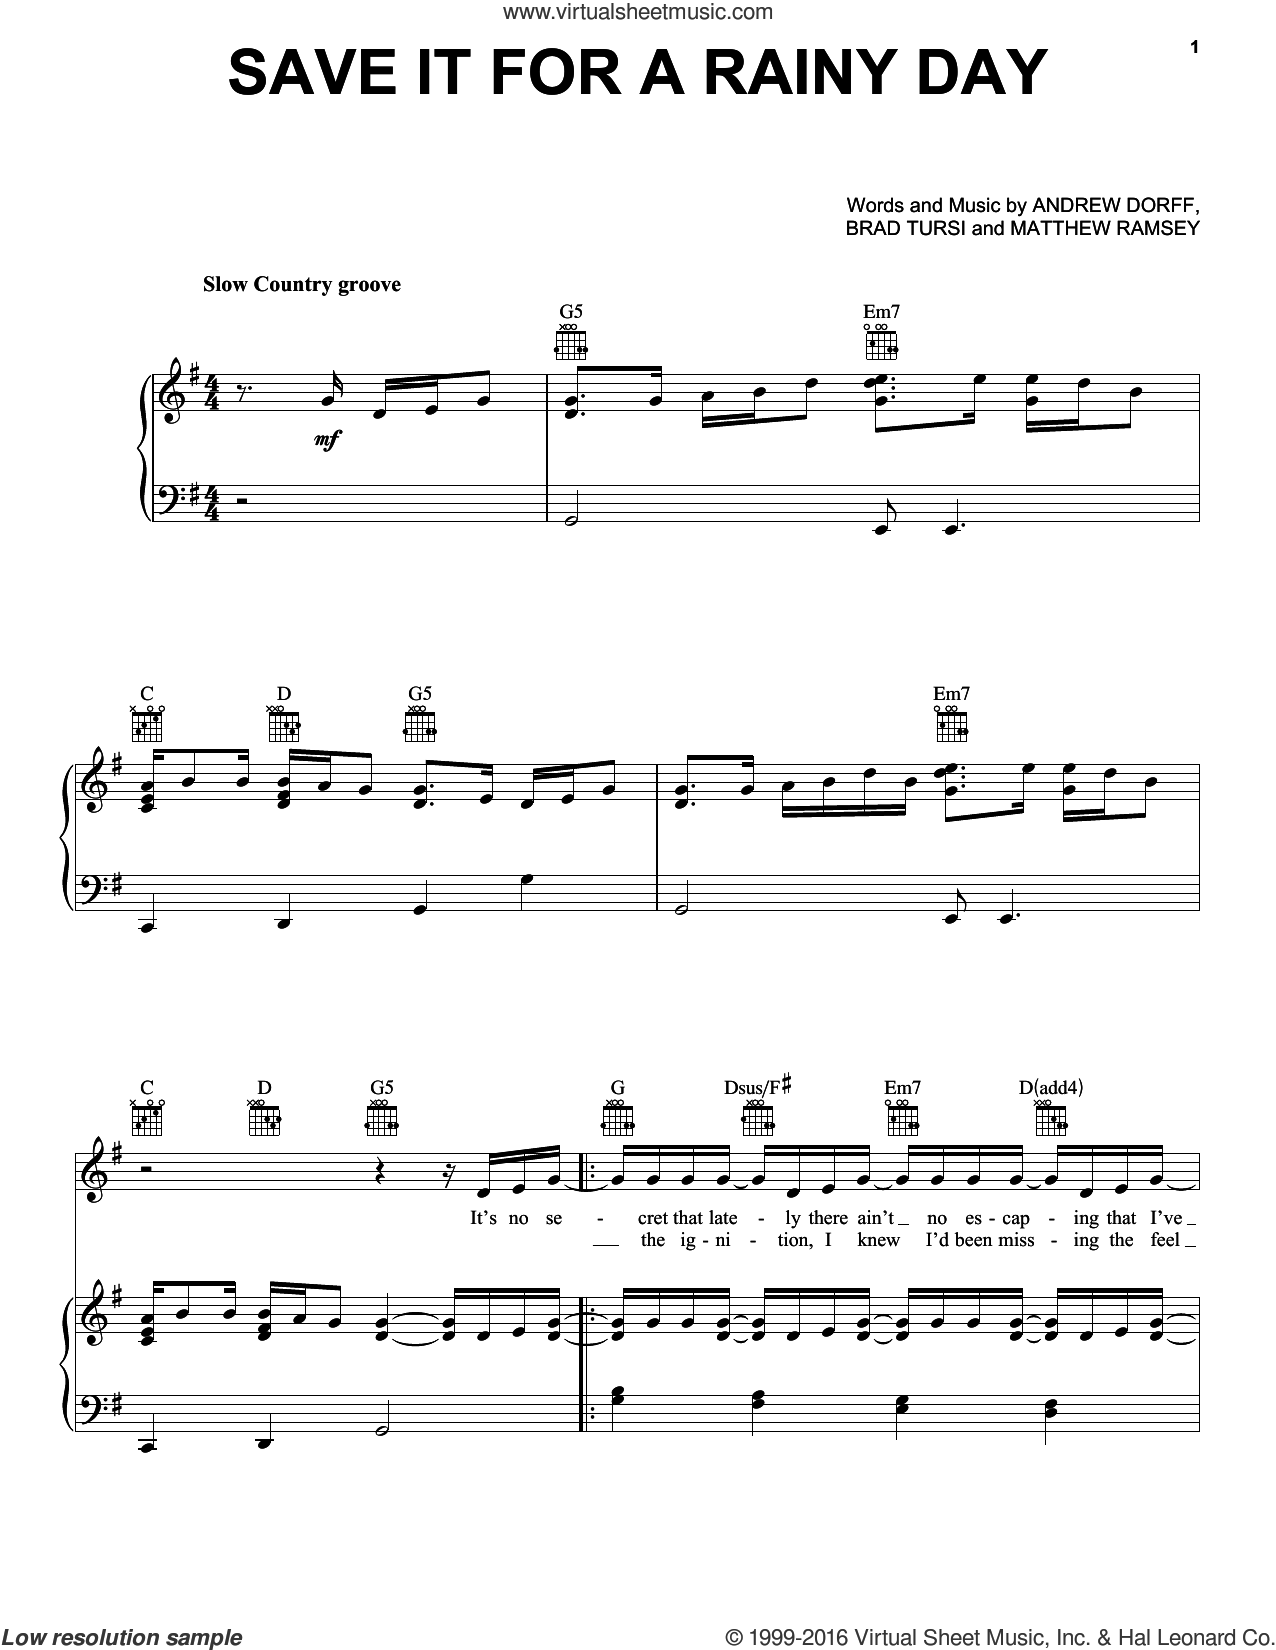 Save It For A Rainy Day sheet music for voice, piano or guitar by Matthew Ramsey